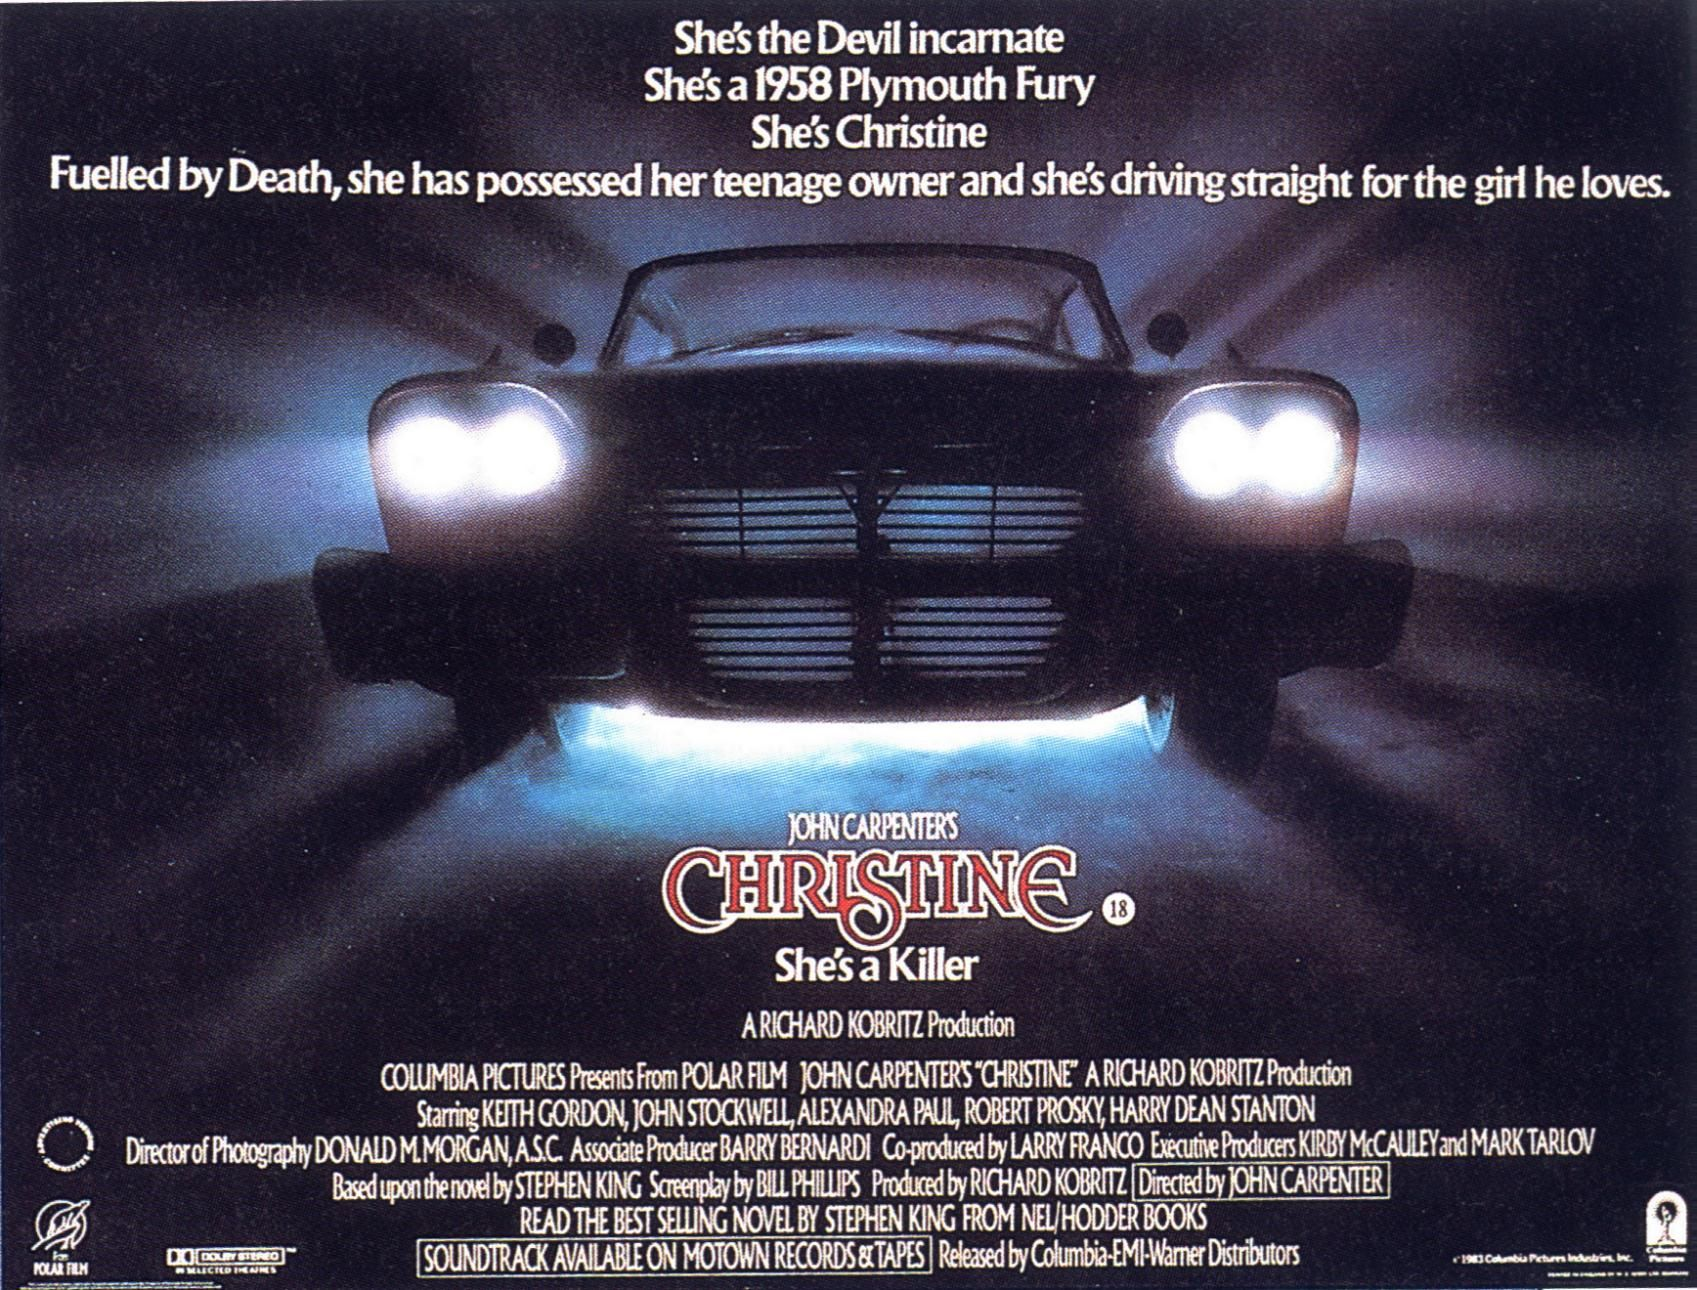 christine movie poster - Google Search | Harrowed: The ...